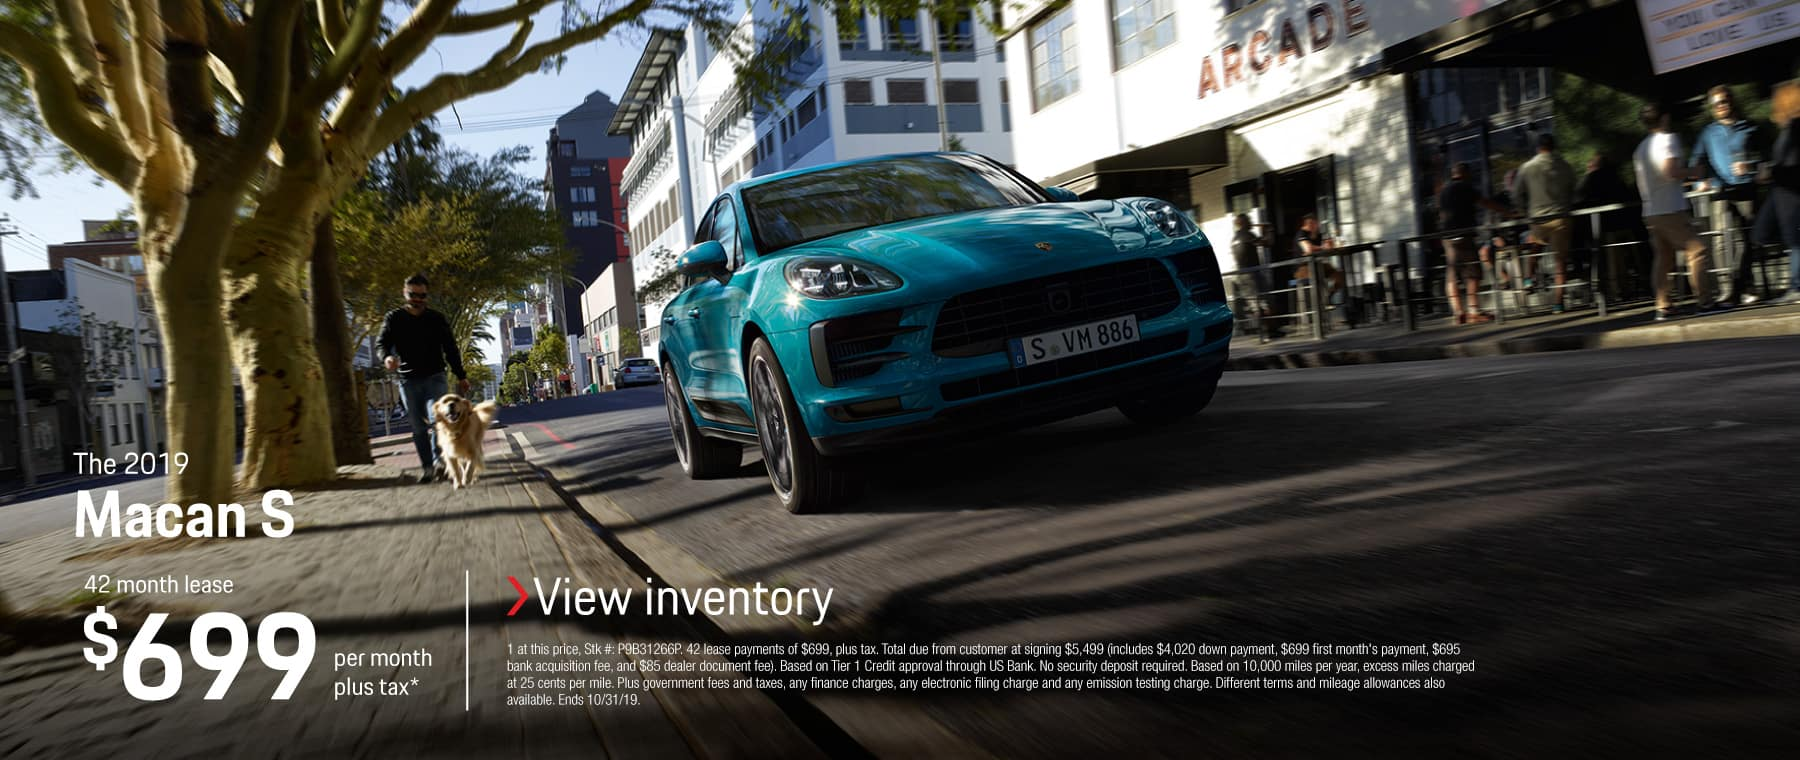 2019 MACAN S LEASE 699 / 42 MONTHS